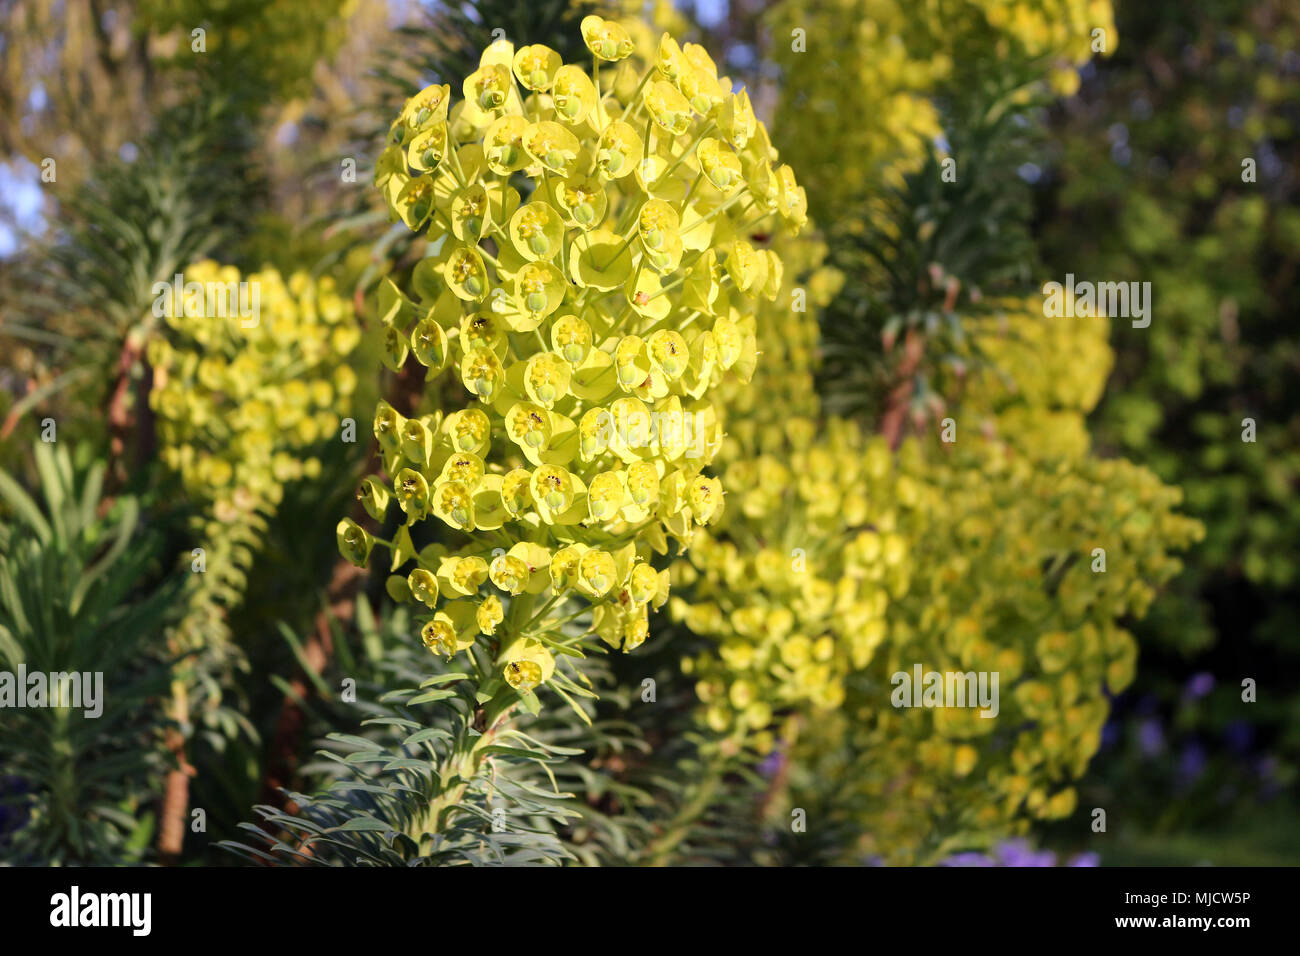 Yellow Mediterranean Spurge - Stock Image